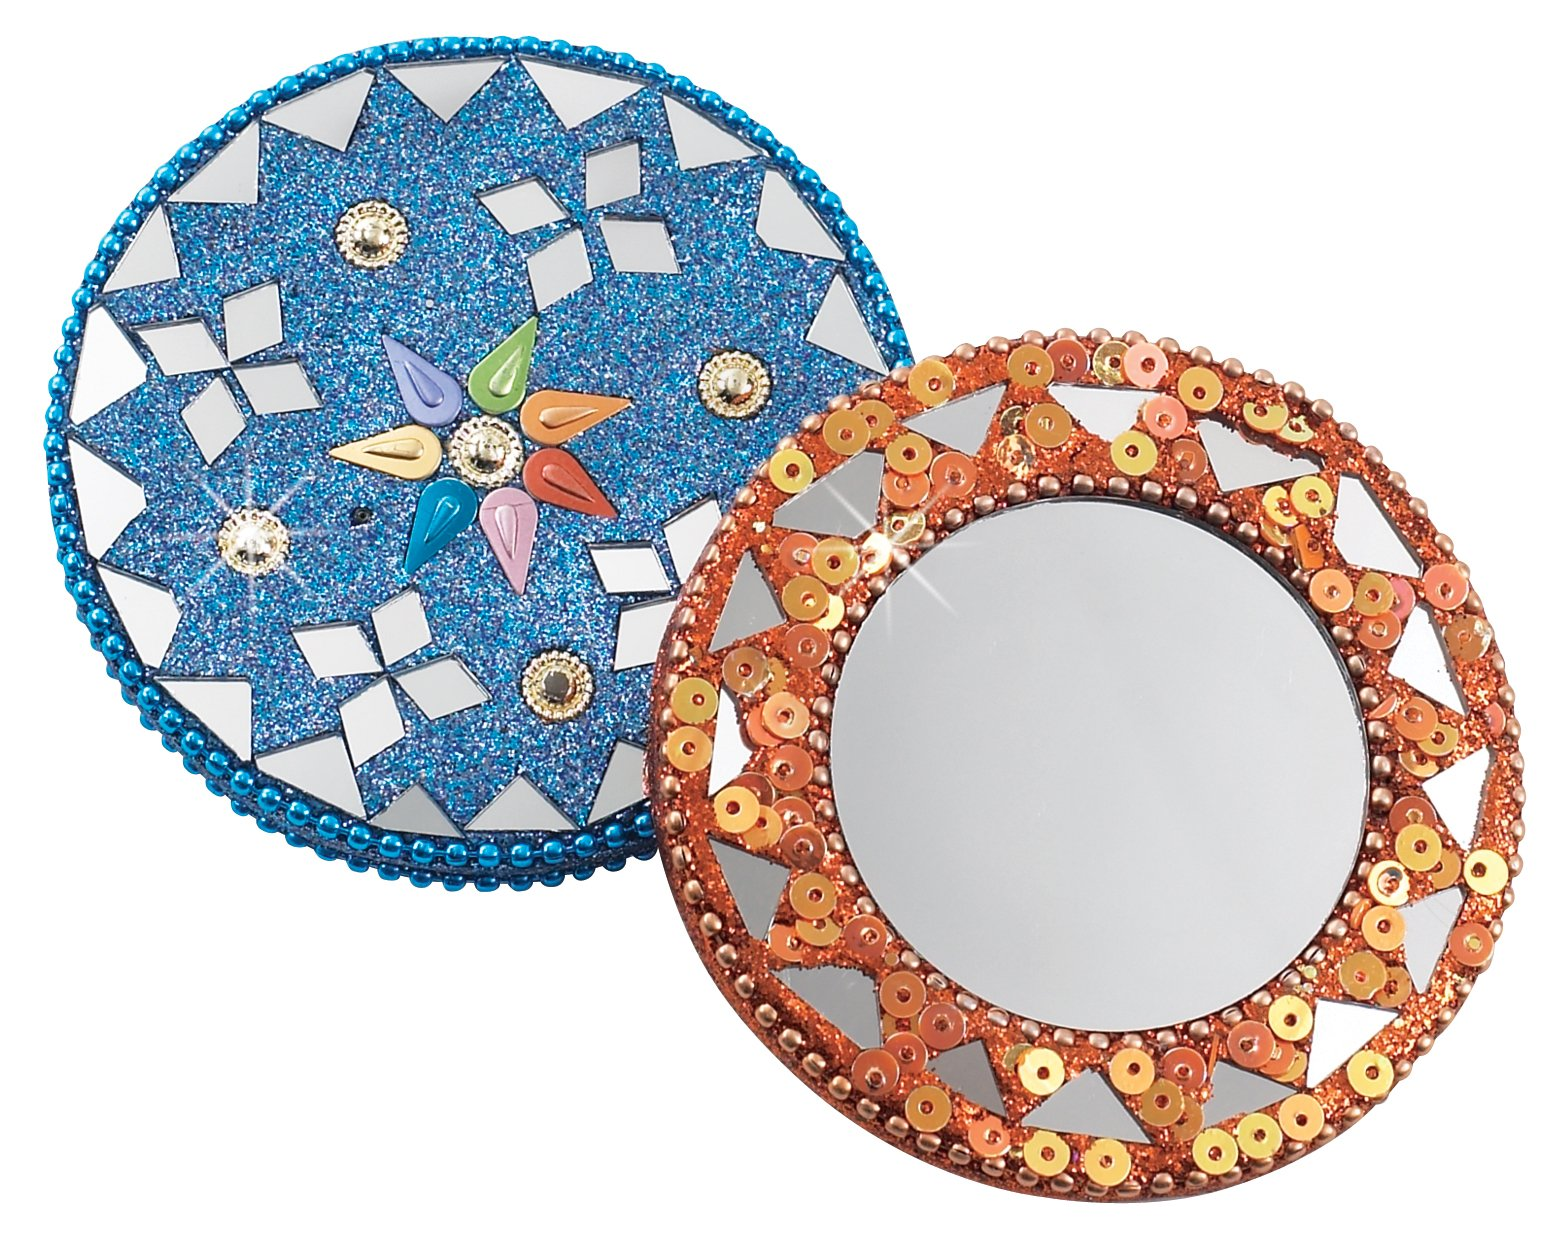 Mirrored Compacts, Set of 2 Handheld Round Compacts with FREE Carrying Pouch, Great Size for Purse or Backpack